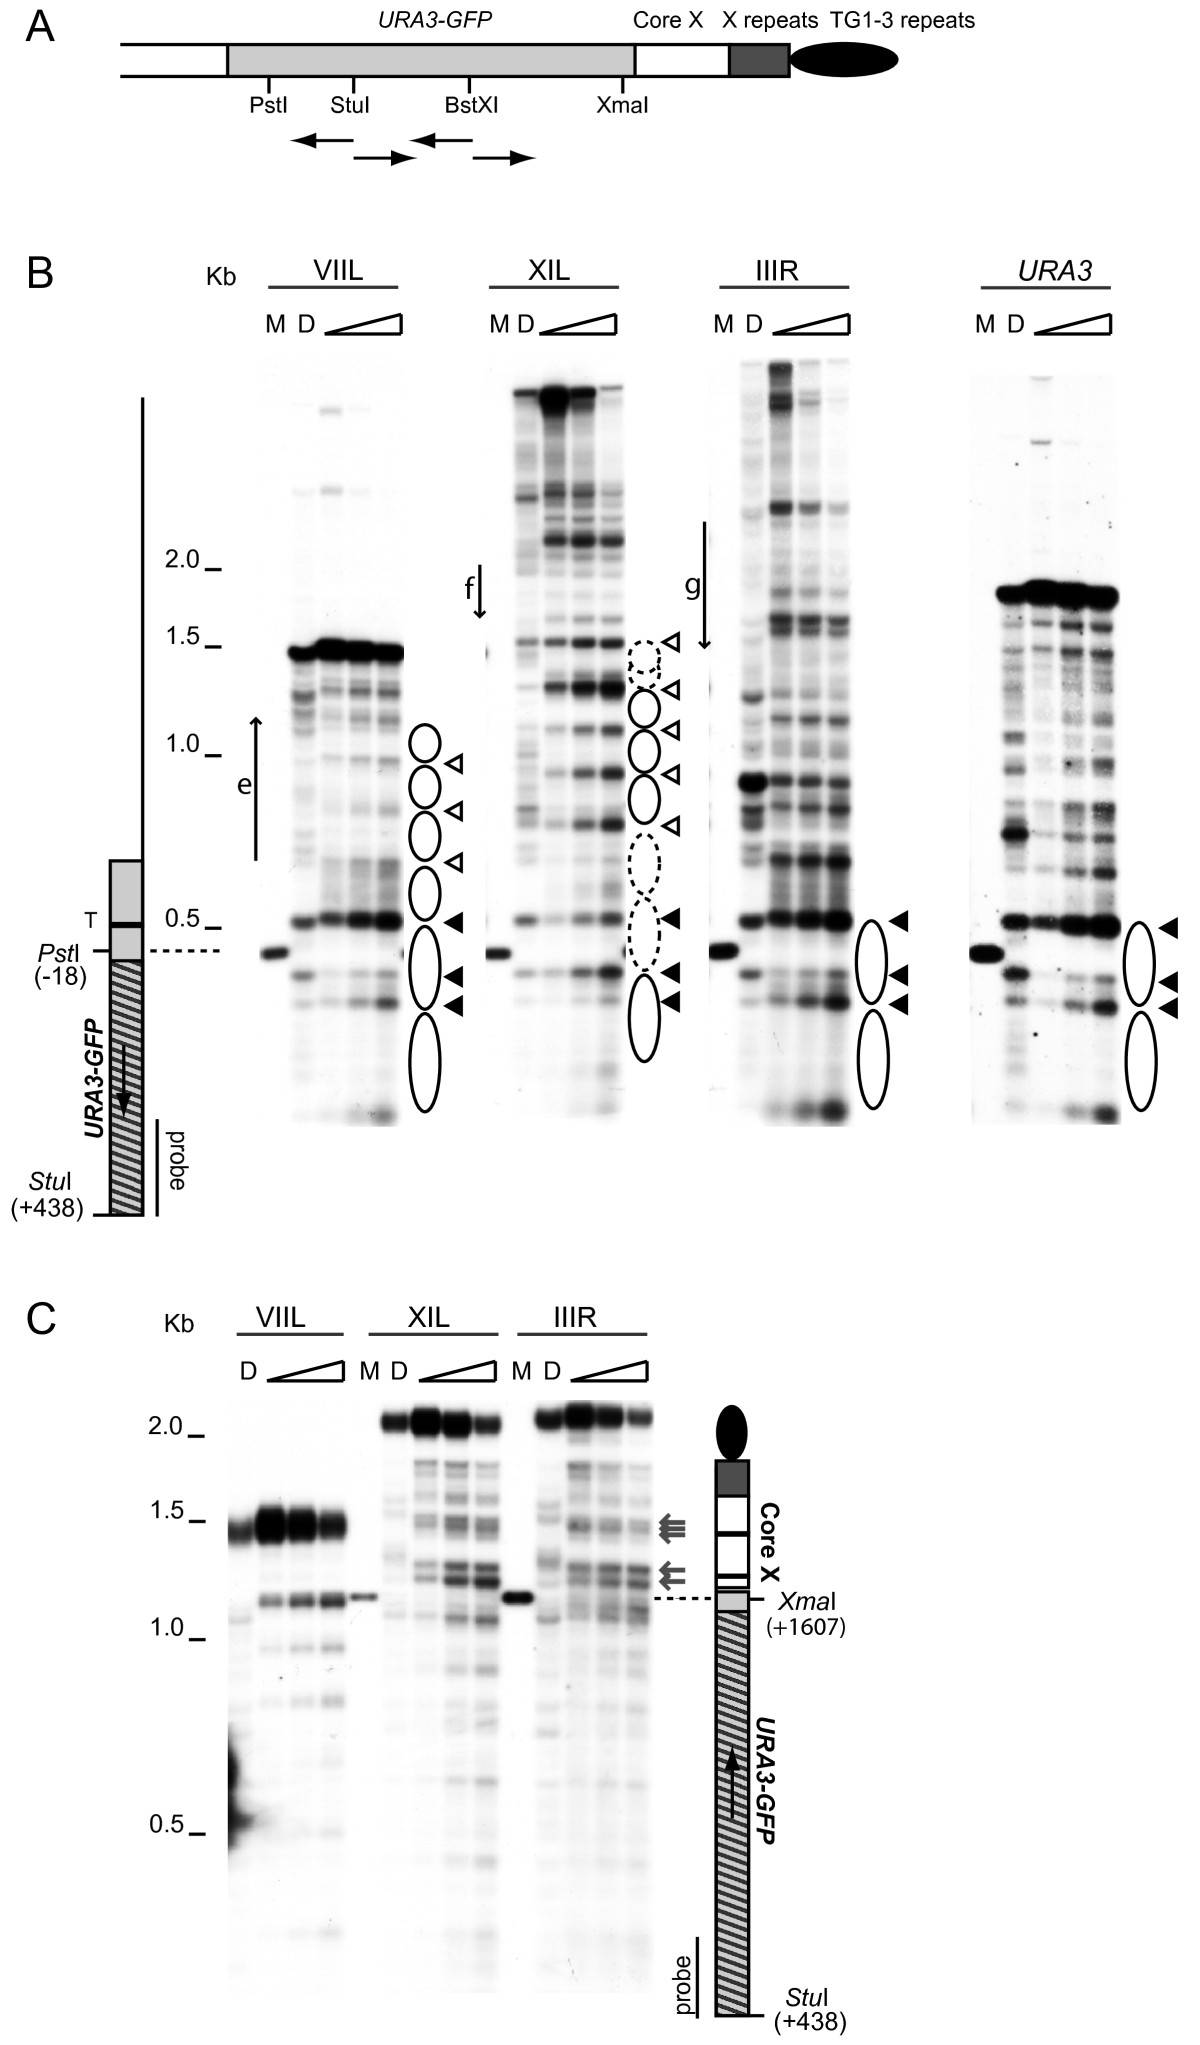 http://static-content.springer.com/image/art%3A10.1186%2F1756-8935-2-18/MediaObjects/13072_2009_Article_28_Fig1_HTML.jpg